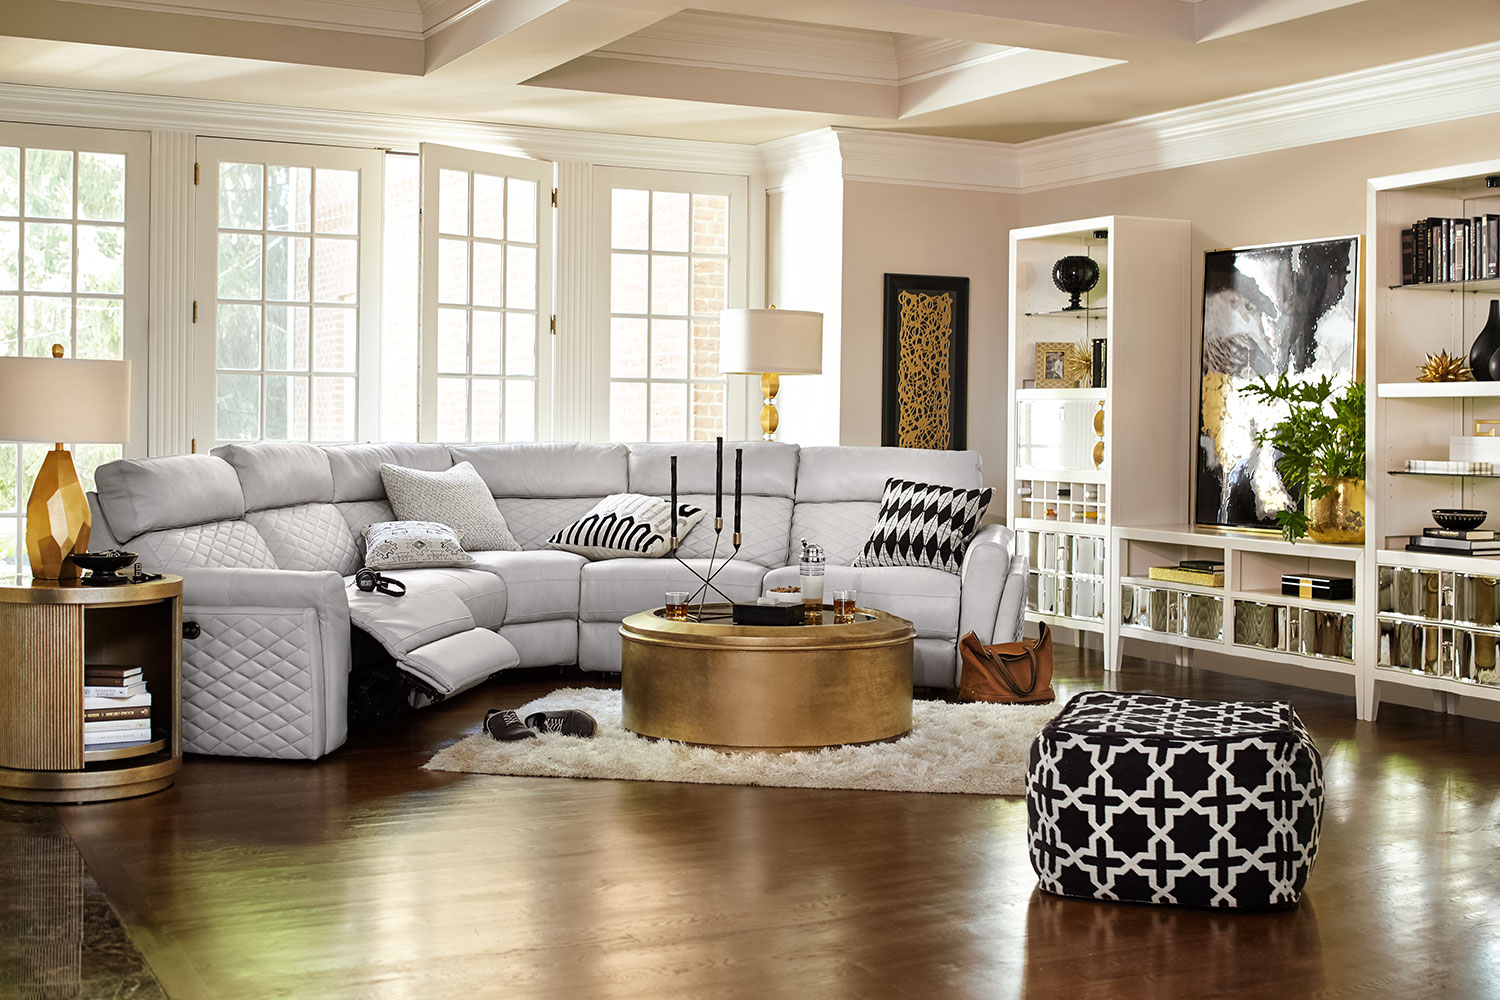 furniture of linen hei tufted set america prod wid fabric qlt sectional p ii stanford like sofa ivory